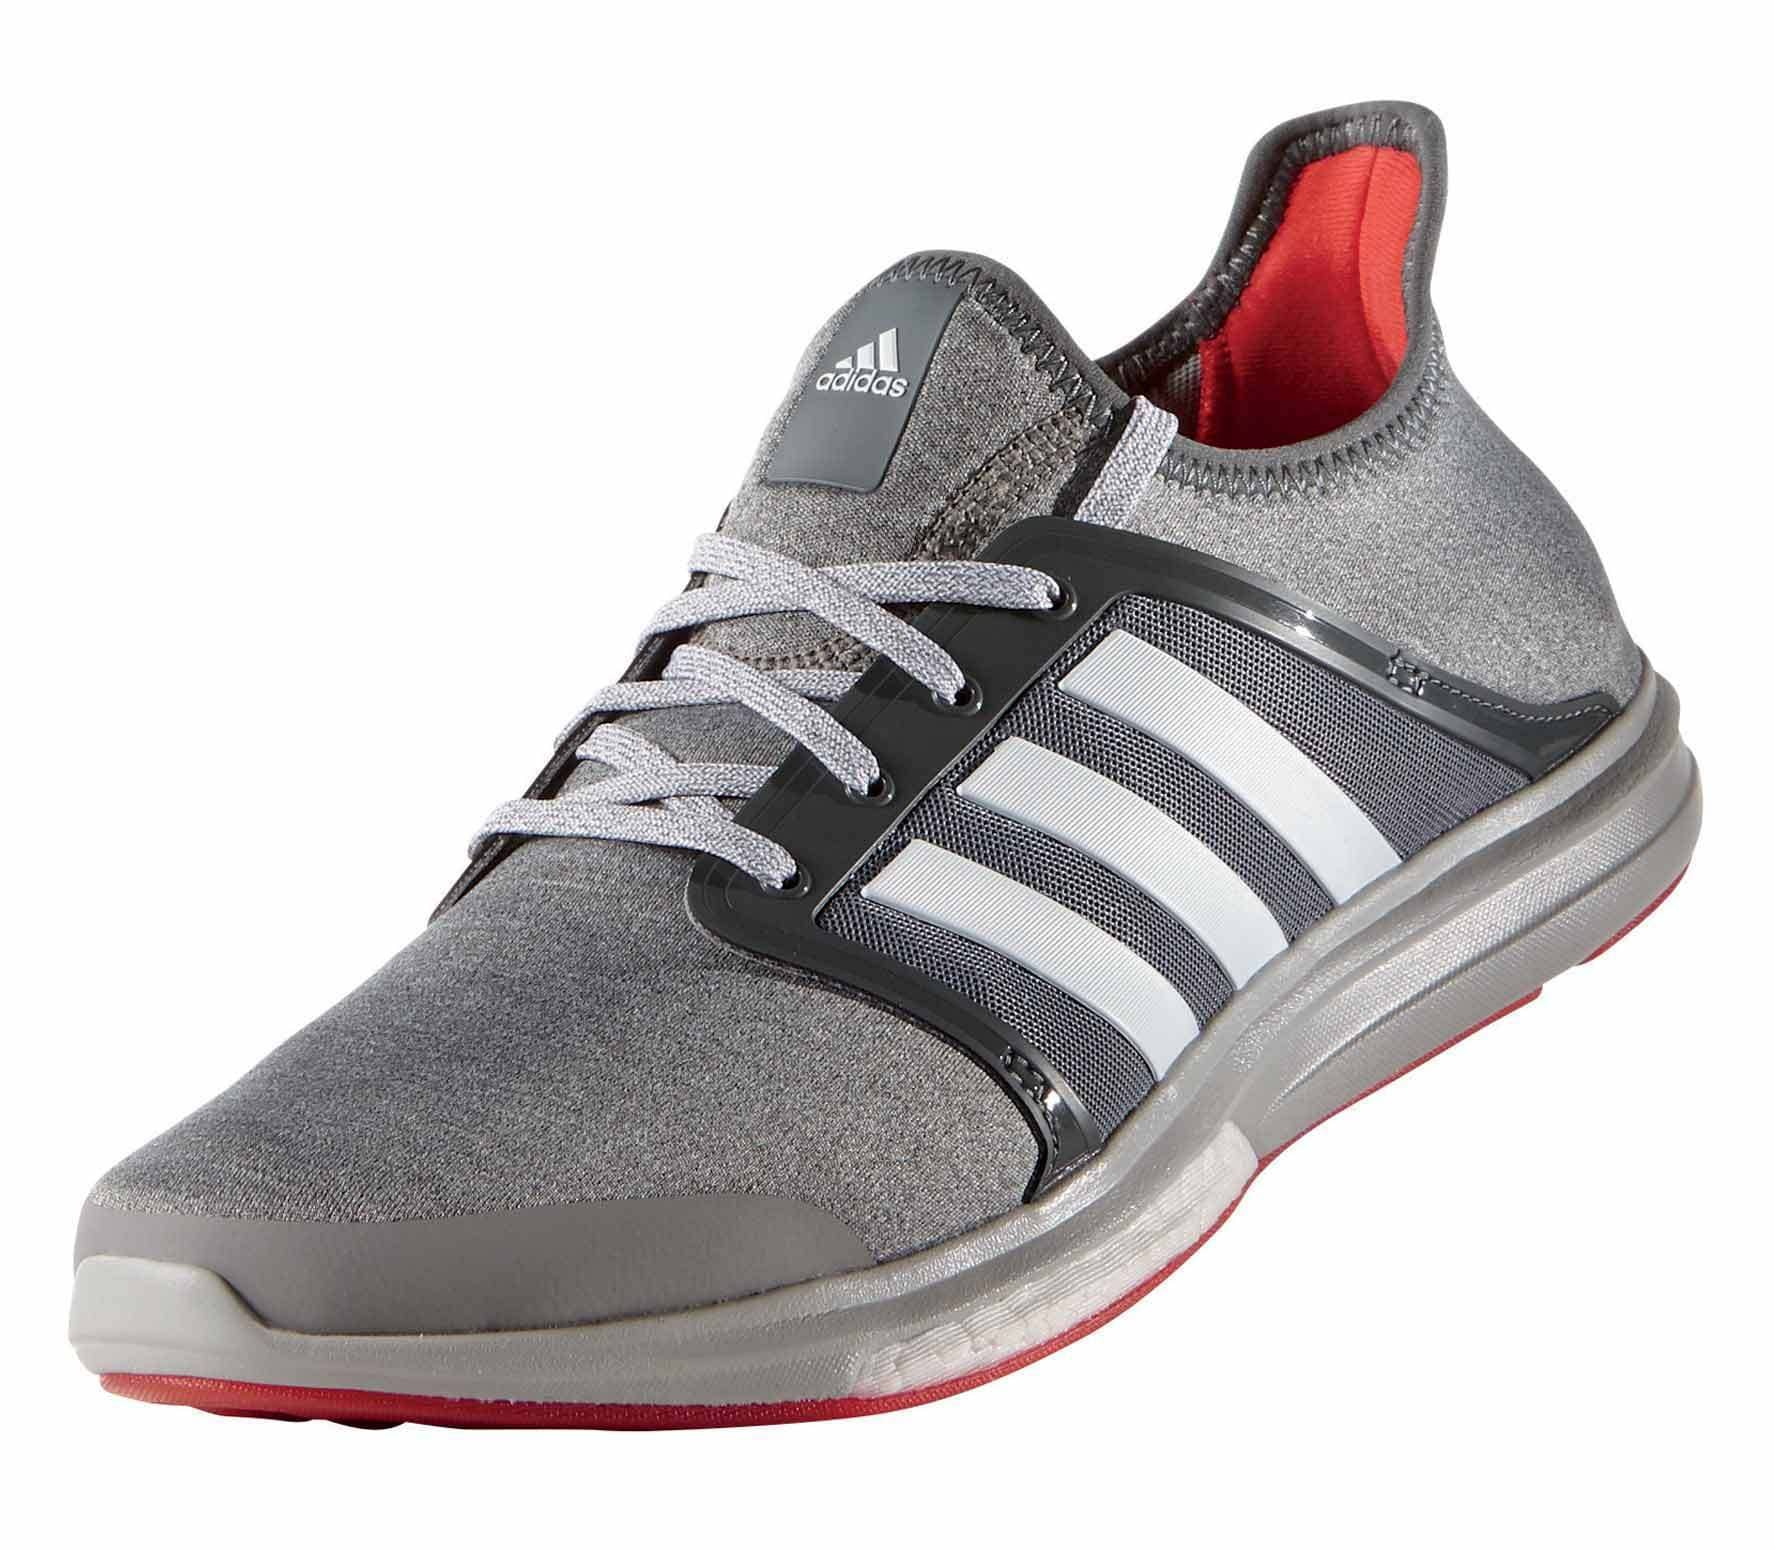 Climachill Sonic Boost Shoes Review